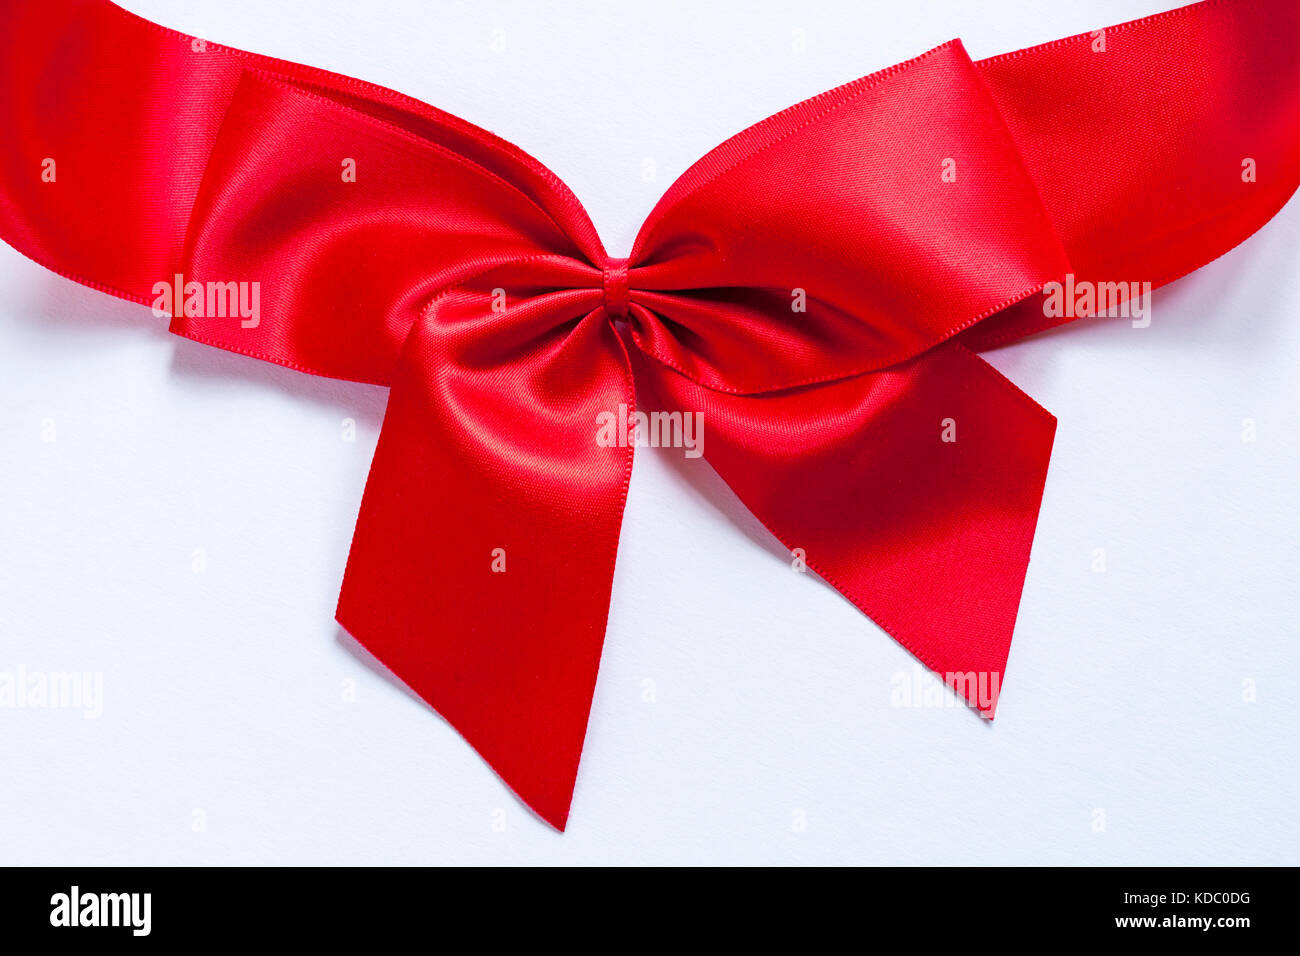 red bow set on white background - Stock Image